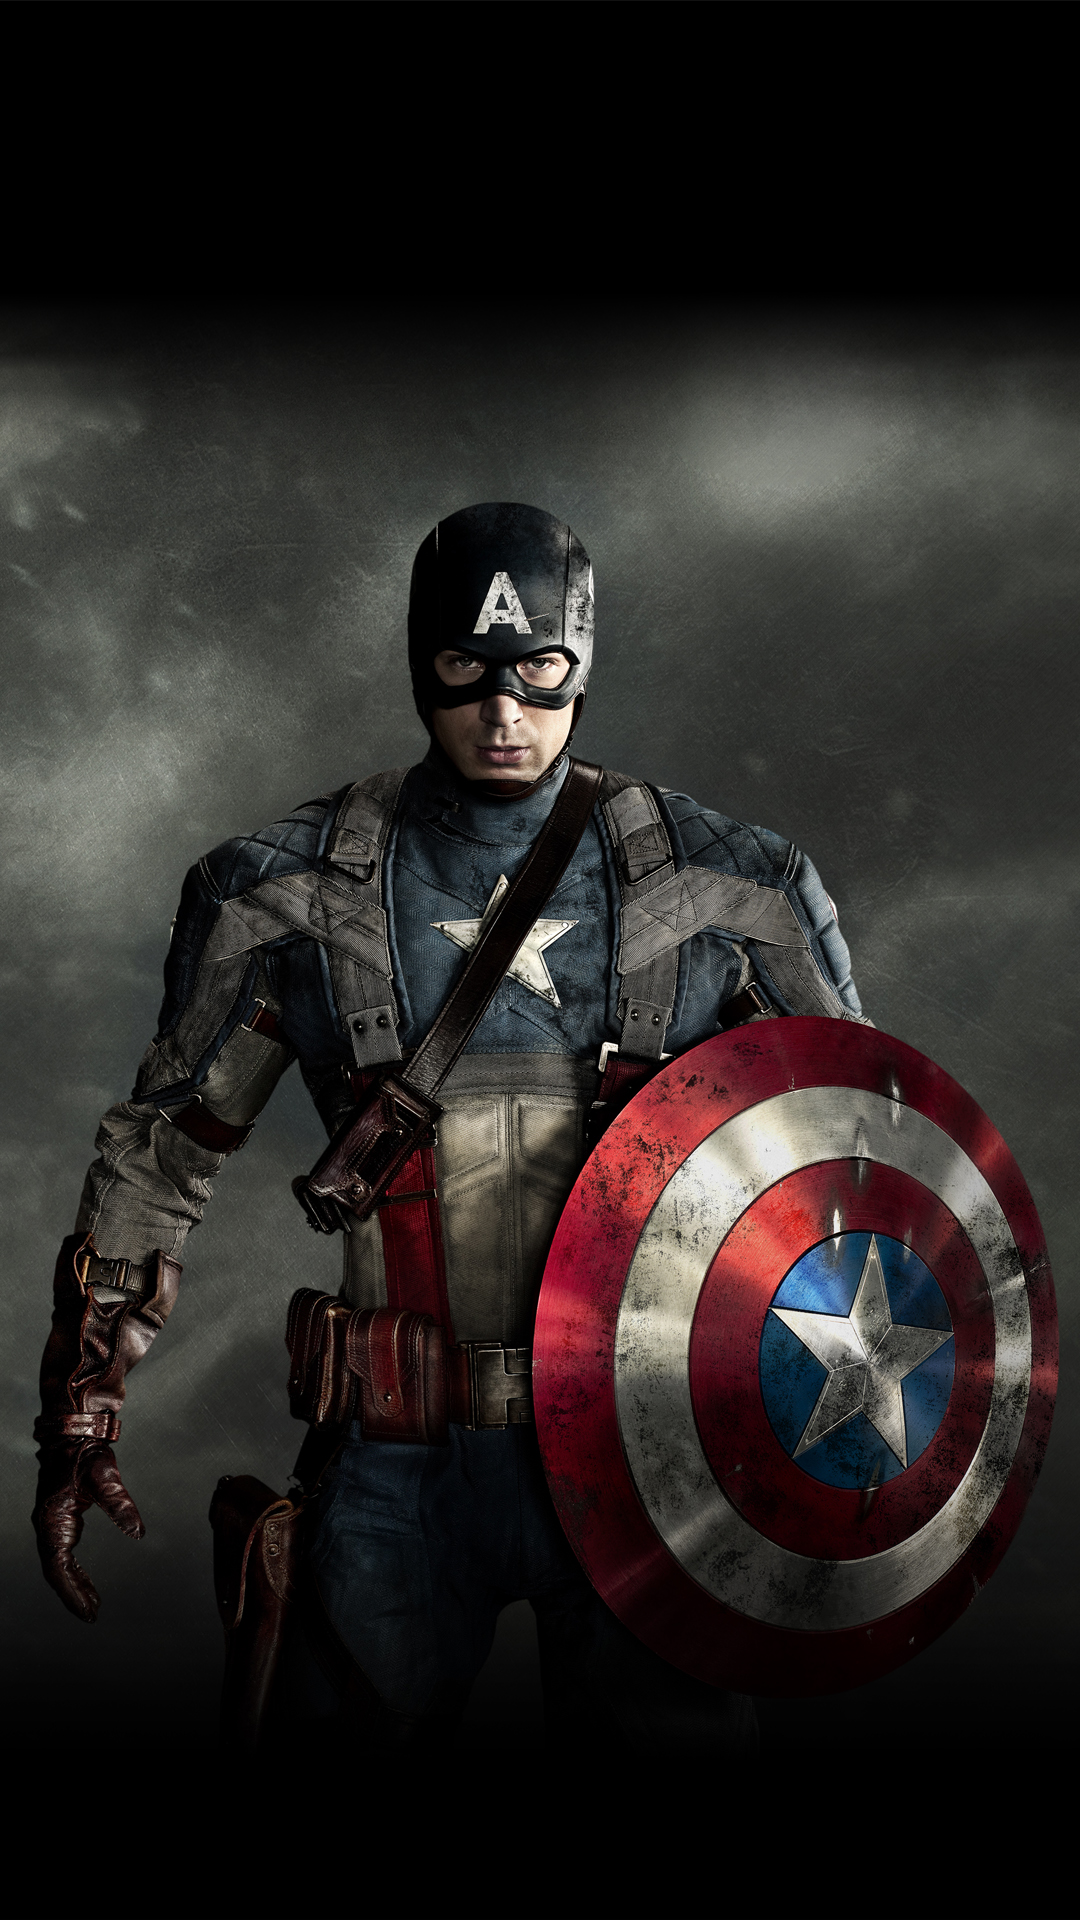 Hd wallpaper of captain america - The Avengers Captain America